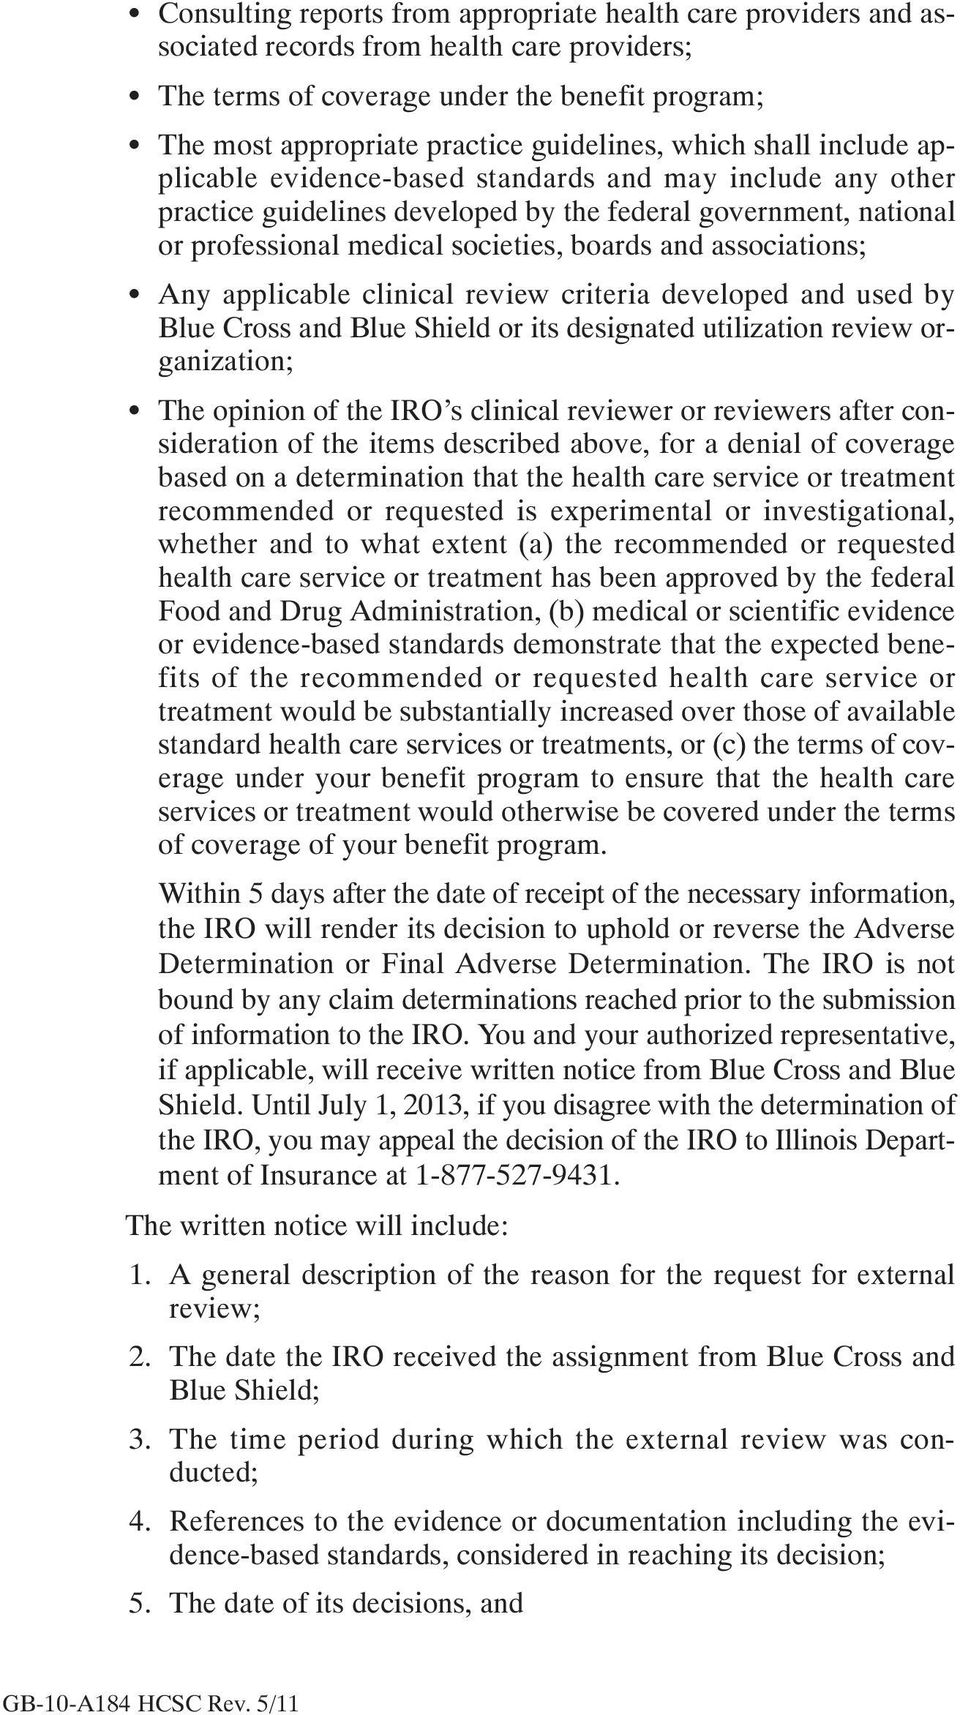 associations; Any applicable clinical review criteria developed and used by Blue Cross and Blue Shield or its designated utilization review organization; The opinion of the IRO's clinical reviewer or